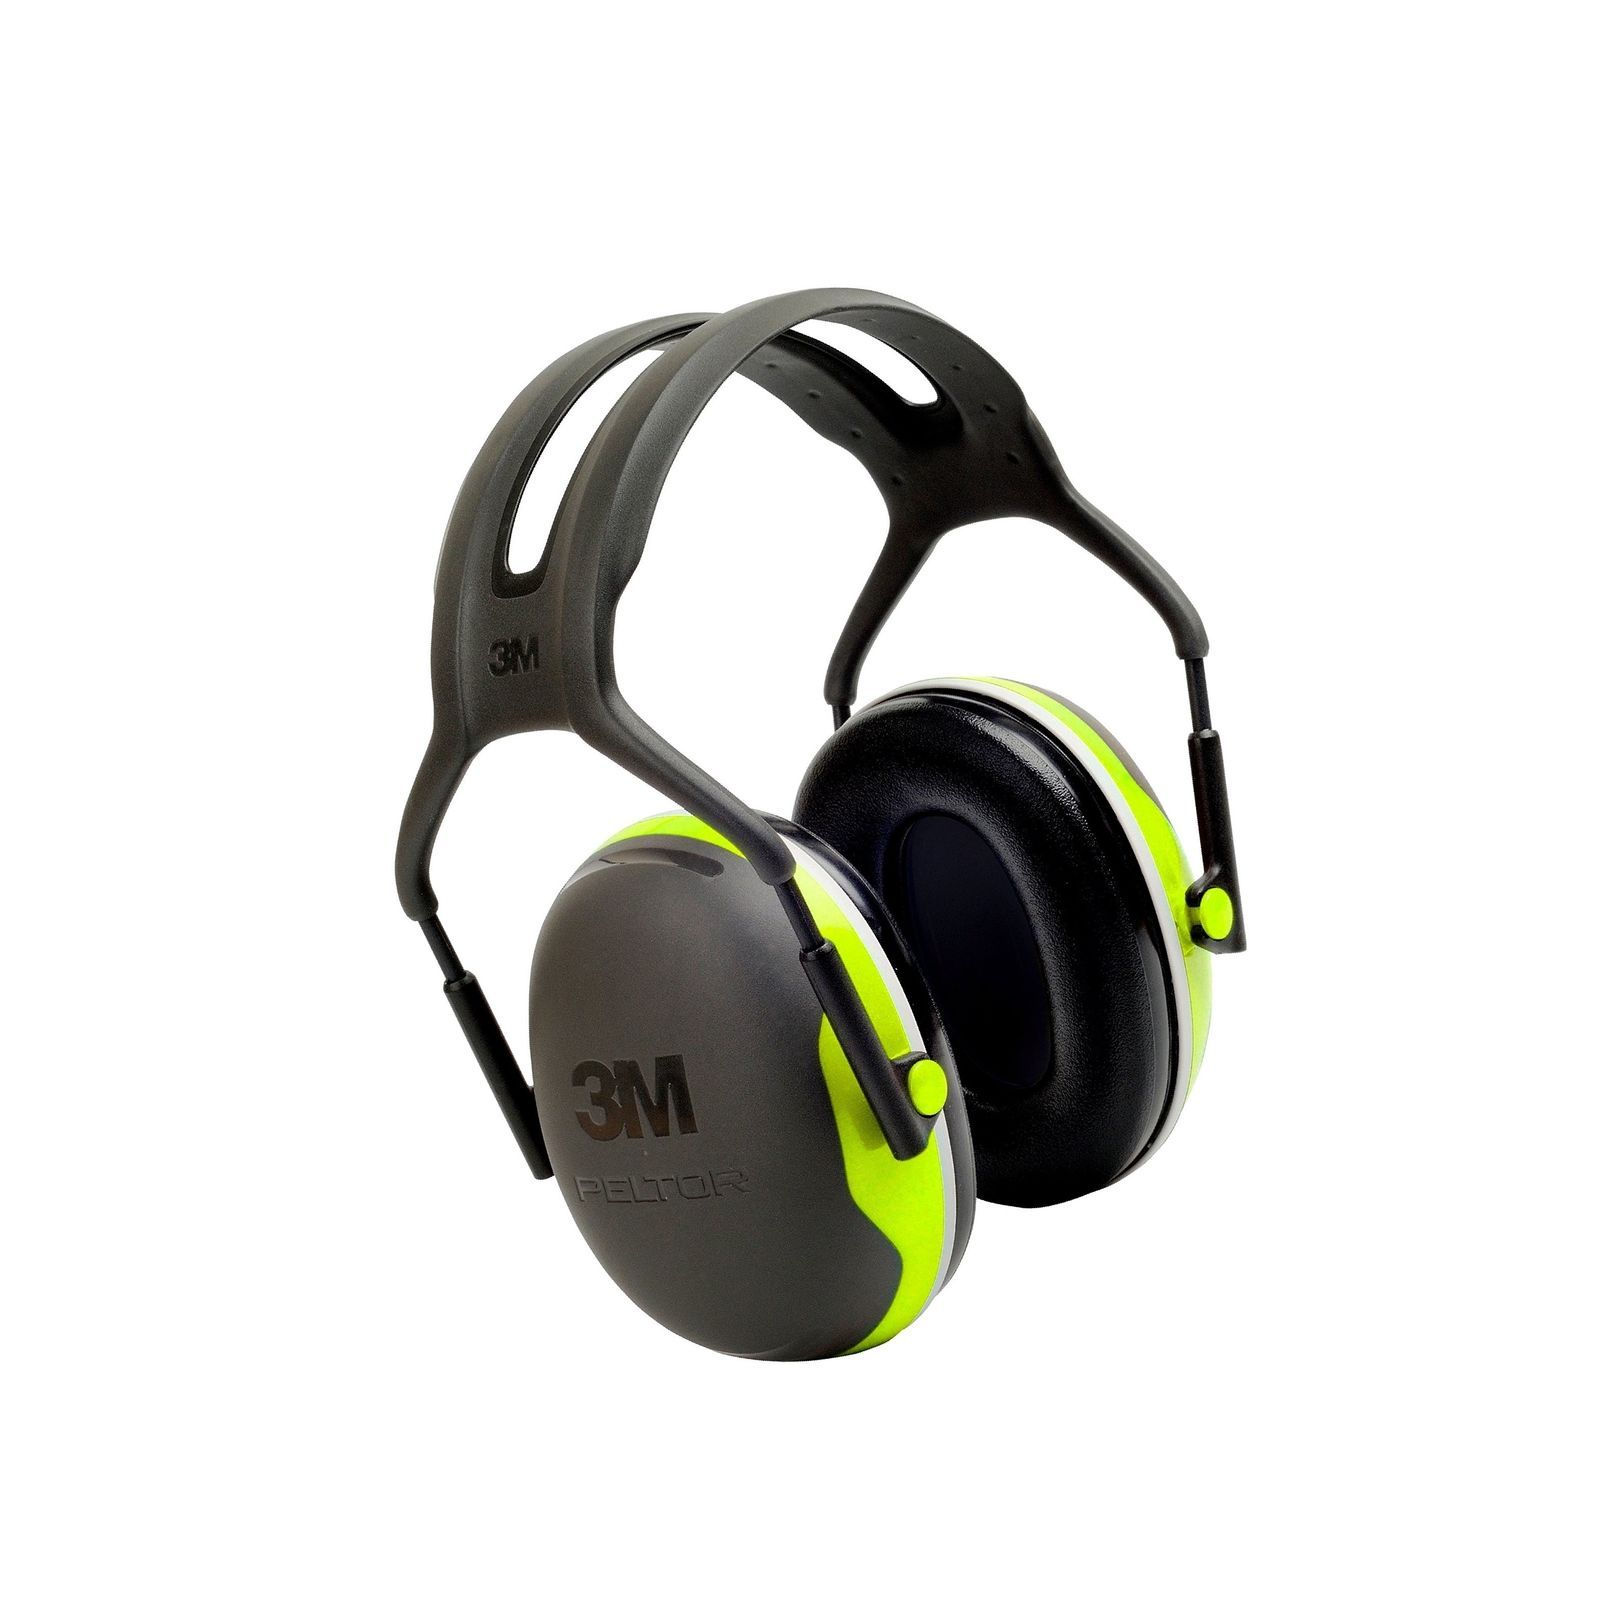 3M Peltor X-Series Over-the-Head Earmuffs, NRR 27 dB, One Size Fits Most, Bla...